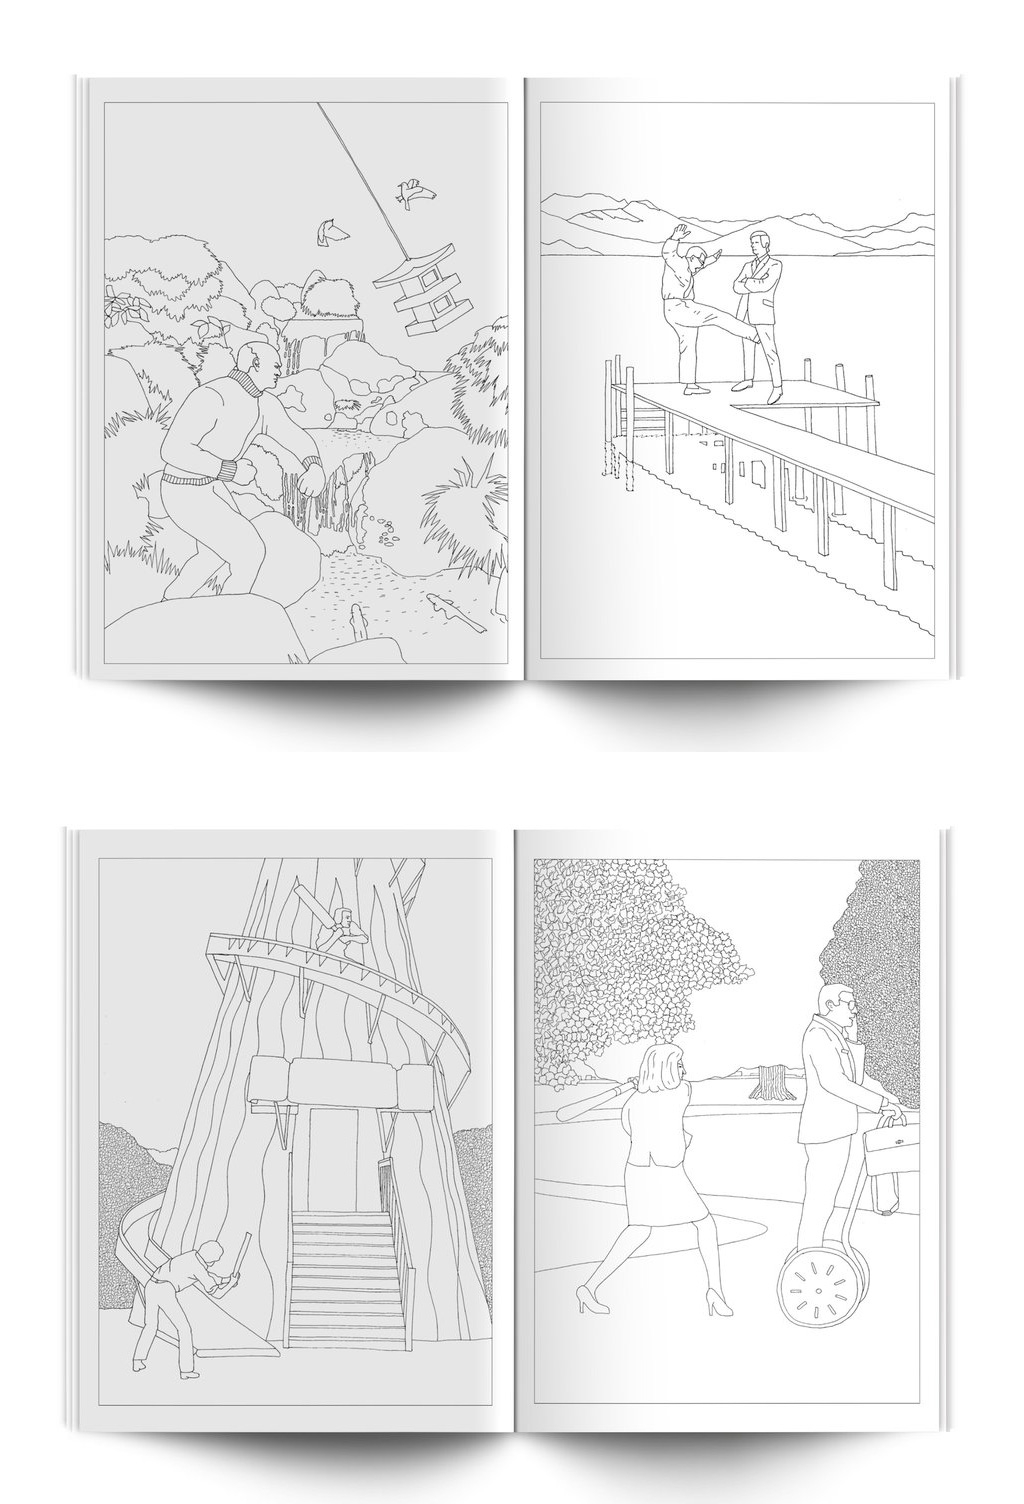 buy the mindless violence colouring book or any others for 1099 from amazon or modern toss - Colouring Pictures Of